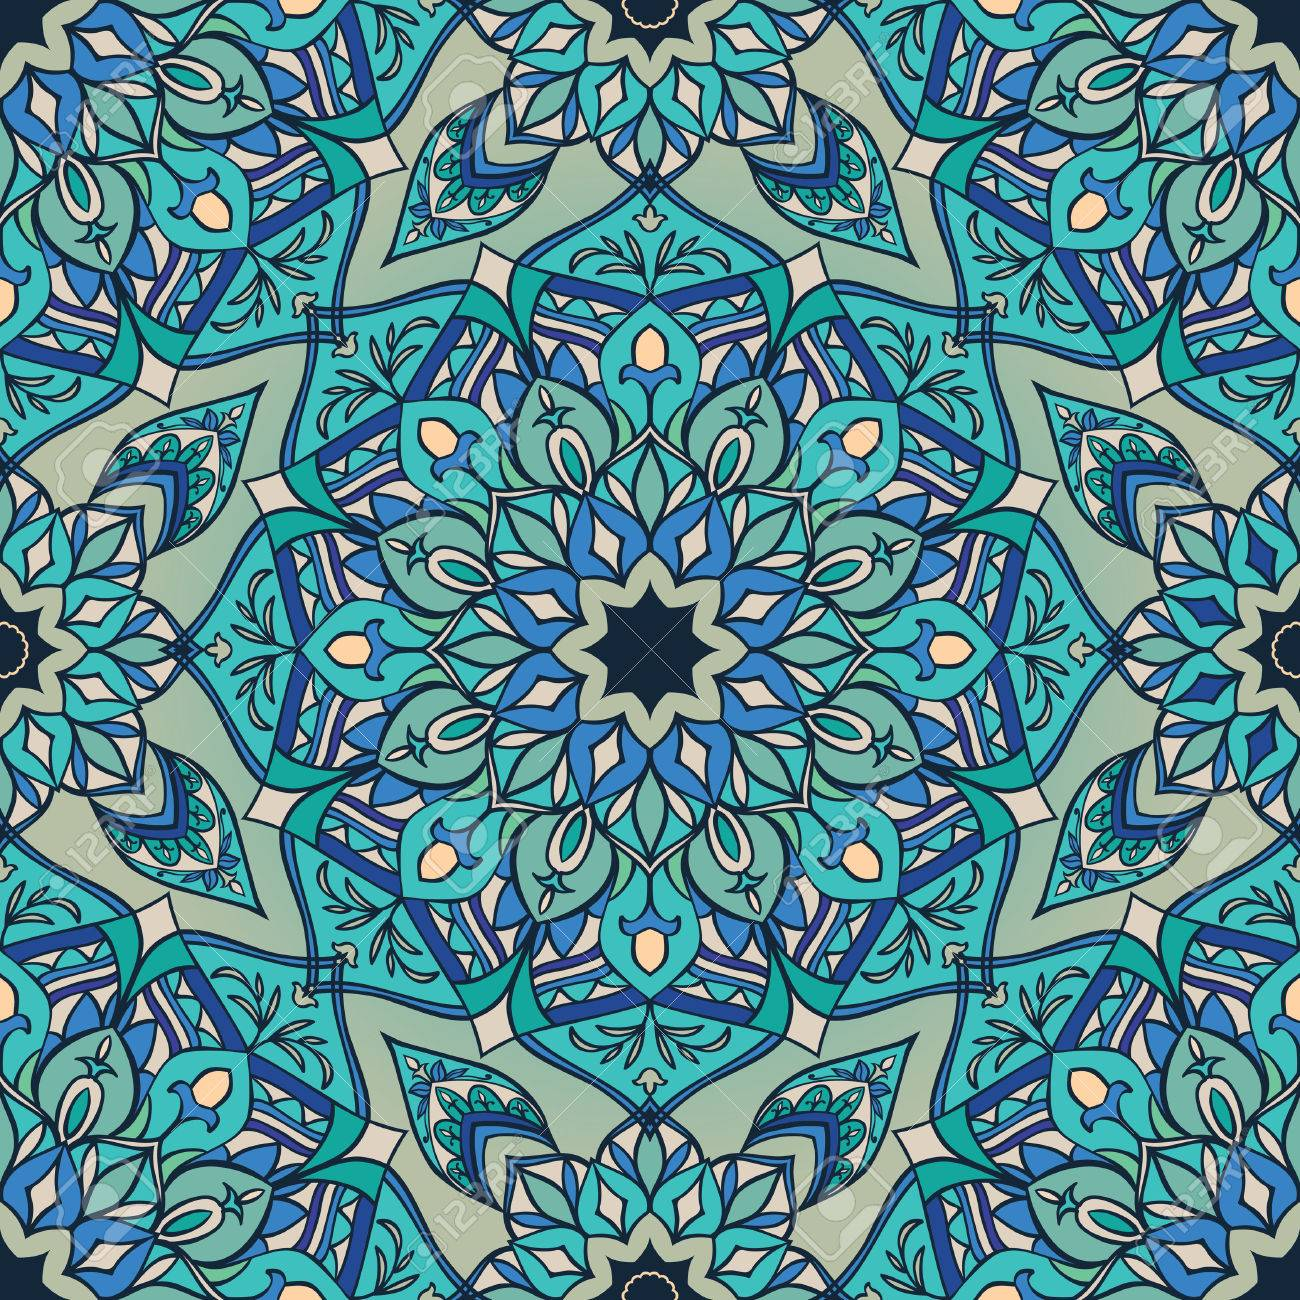 Blue Ornament Of Mandala Template For Carpets Shawls Textiles 1300x1300